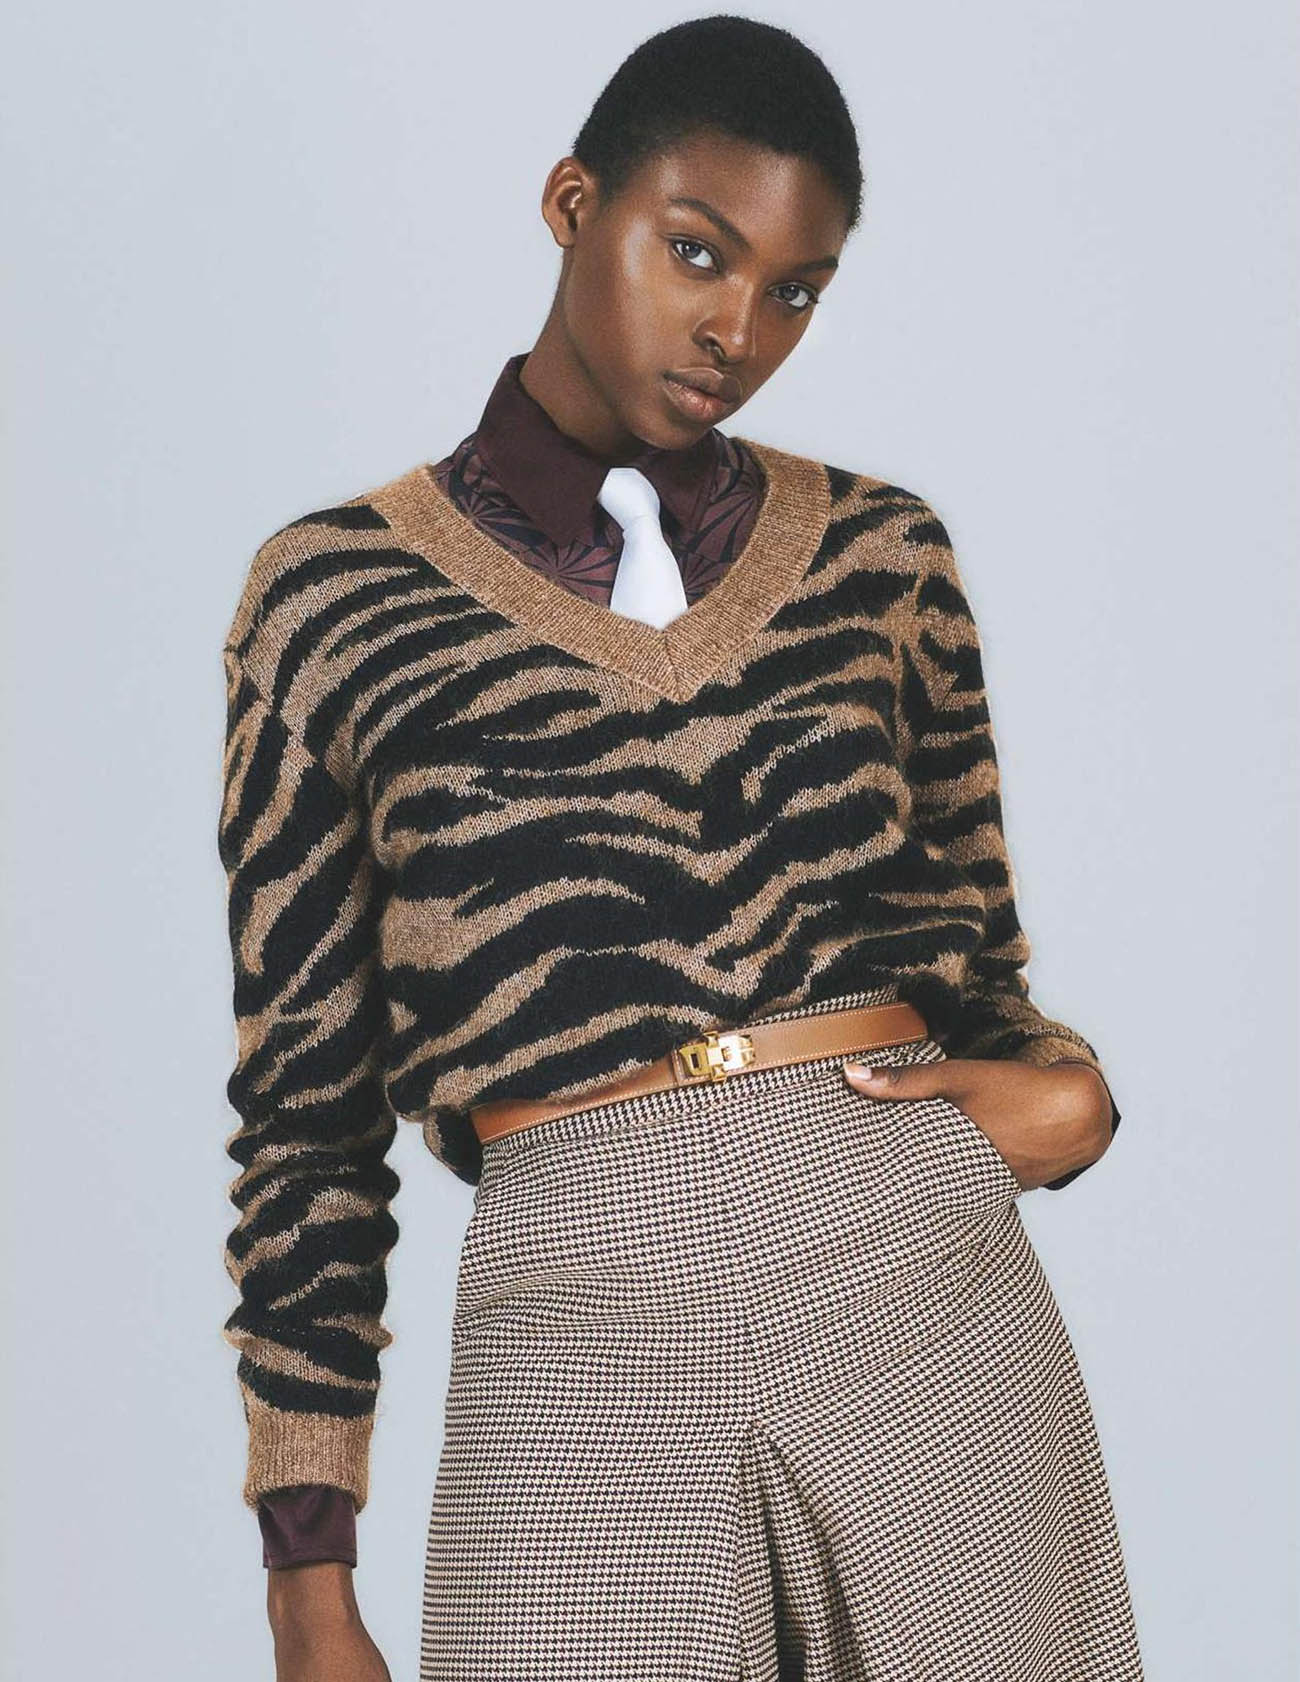 Exaucée De Dieu Makuiza by Stephanie Pfaender for Elle France October 2nd, 2020